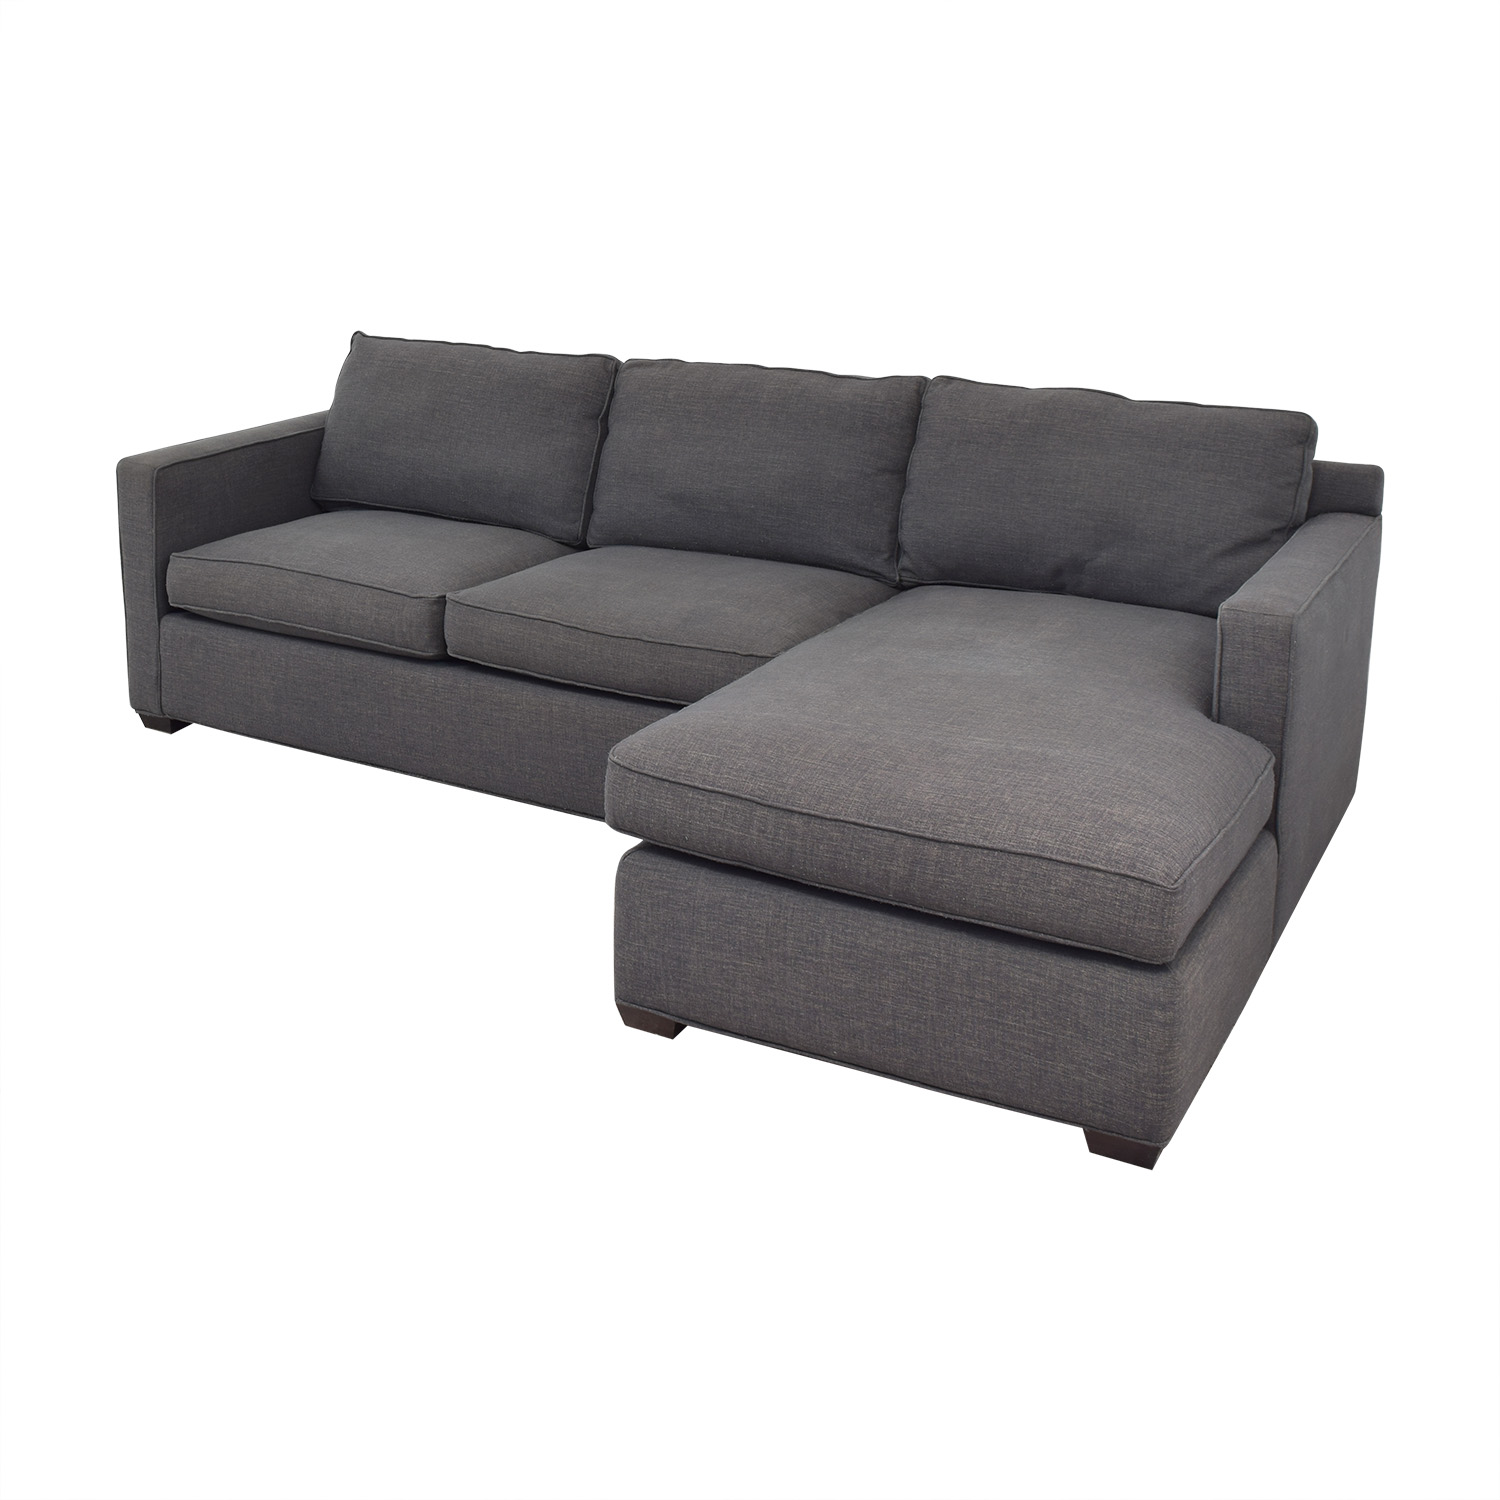 buy Crate & Barrel Two Piece Sectional Sofa Crate & Barrel Sofas